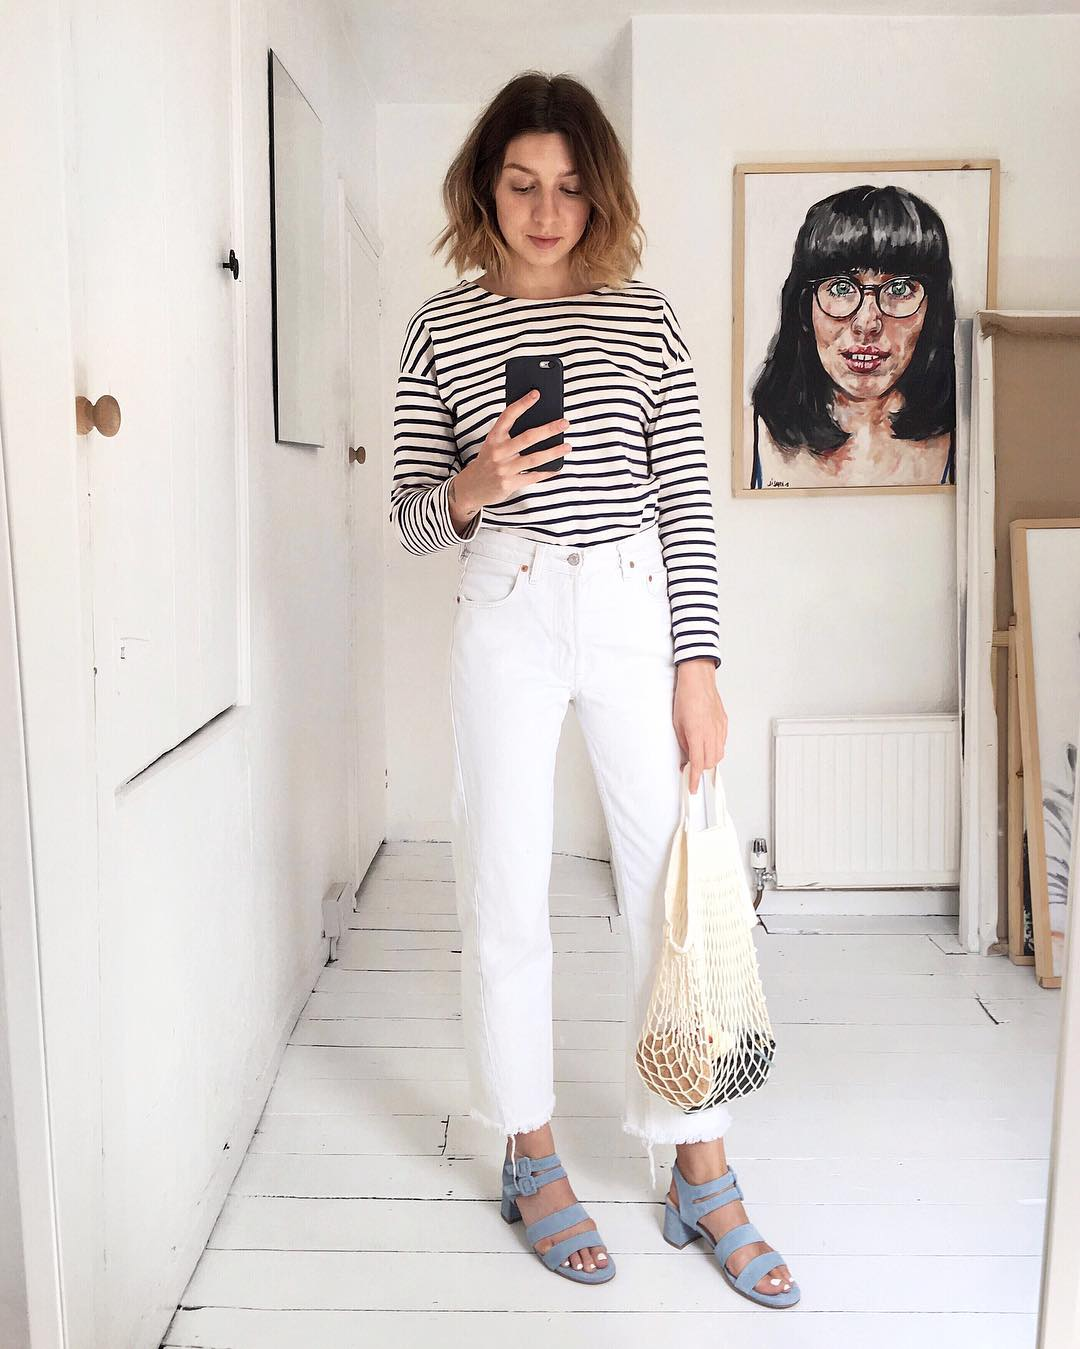 ow to Wear a Striped T-Shirt for Spring — Instagram Outfit Idea with raw-hem white jeans, mesh tote, blue suede sandals